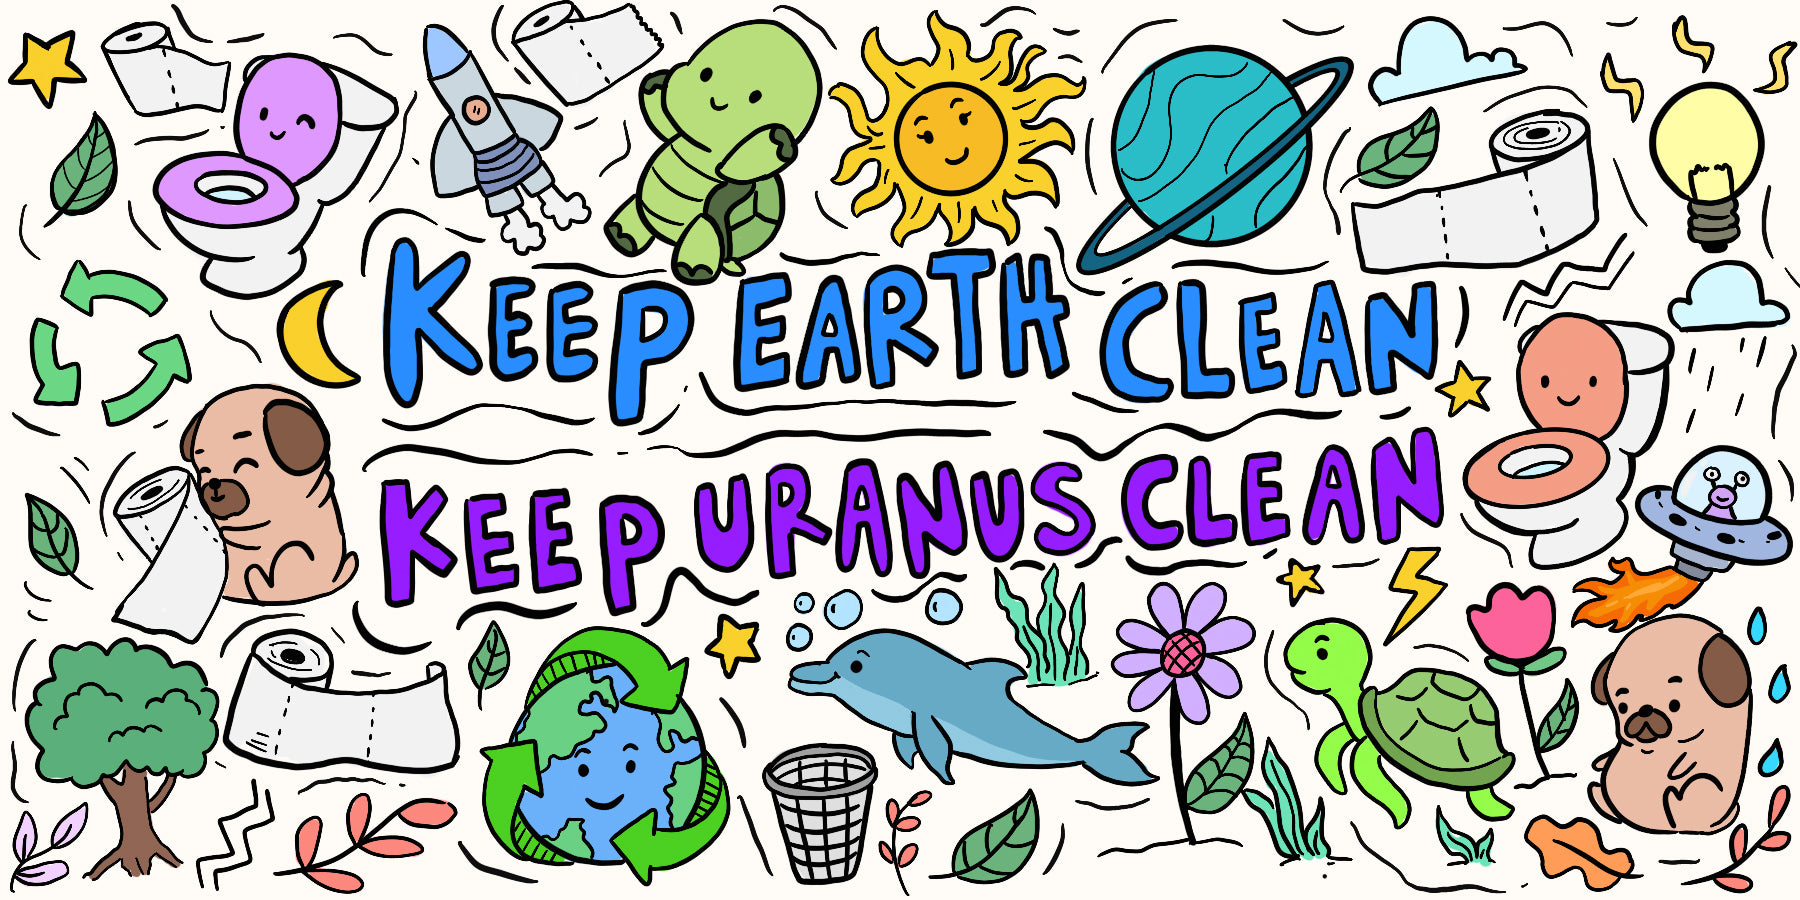 eco friendly doodle with keep earth clean and keep uranus clean text